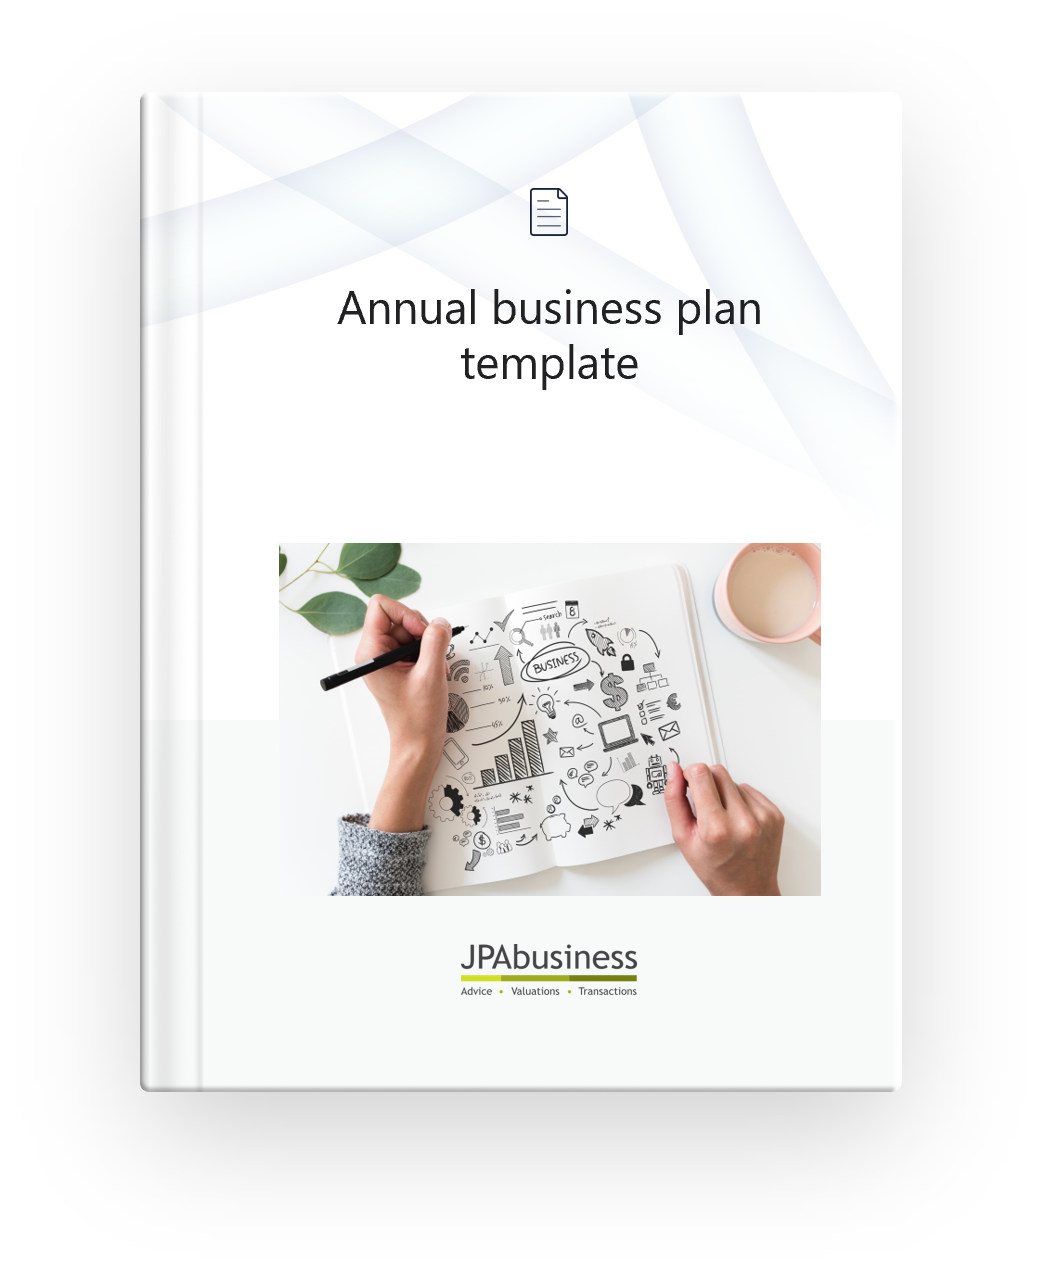 The_Annual_Business_Plan_Template_COVER.png